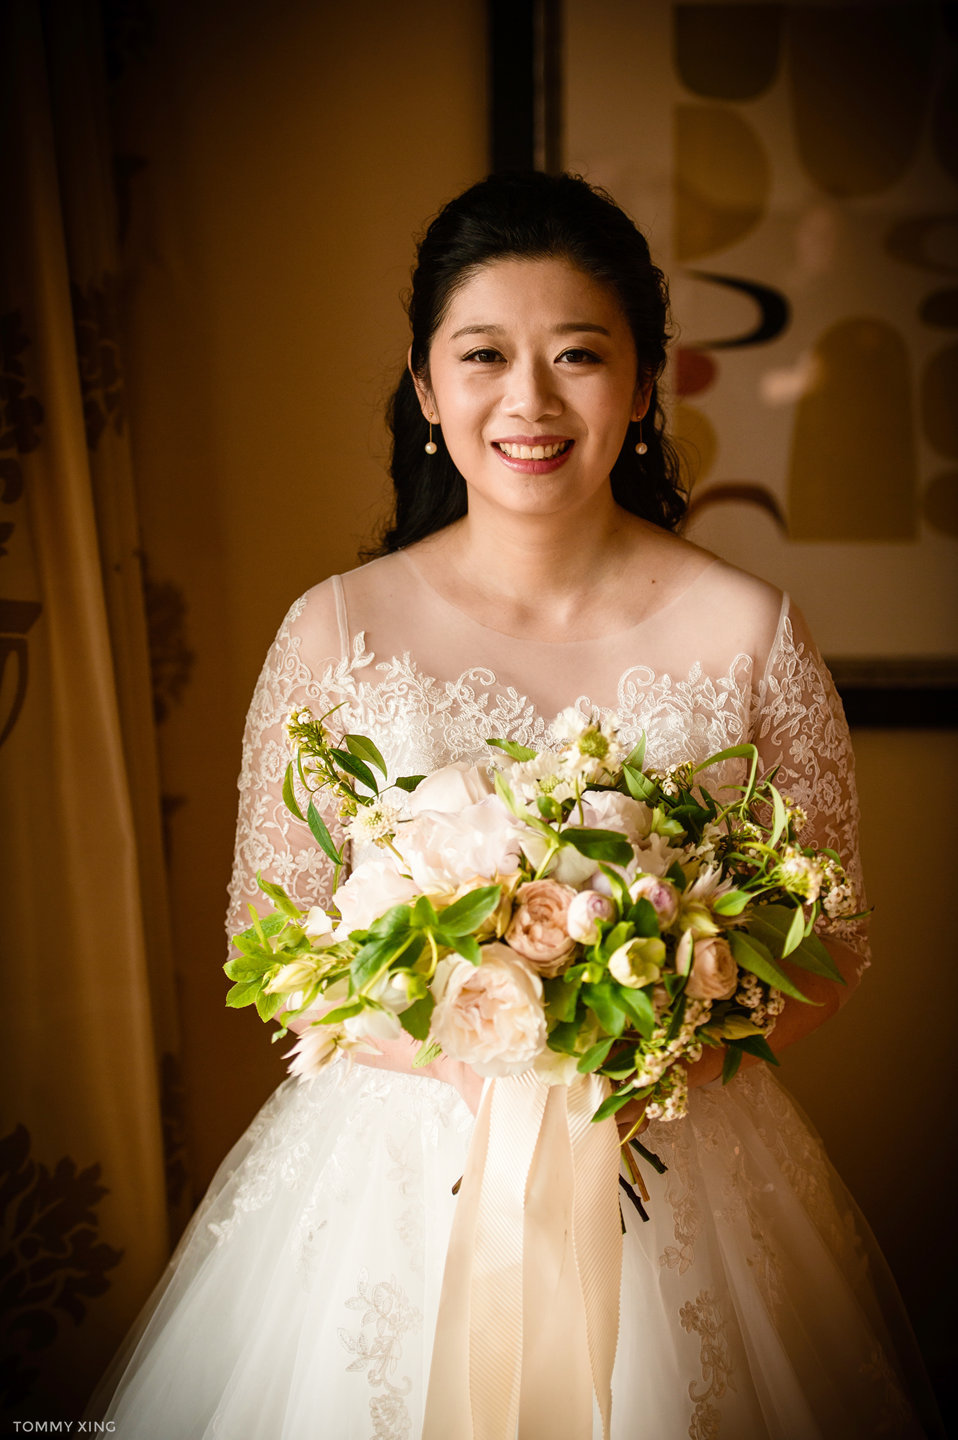 San Francisco Wedding Photography Valley Presbyterian Church WEDDING Tommy Xing Photography 洛杉矶旧金山婚礼婚纱照摄影师027.jpg